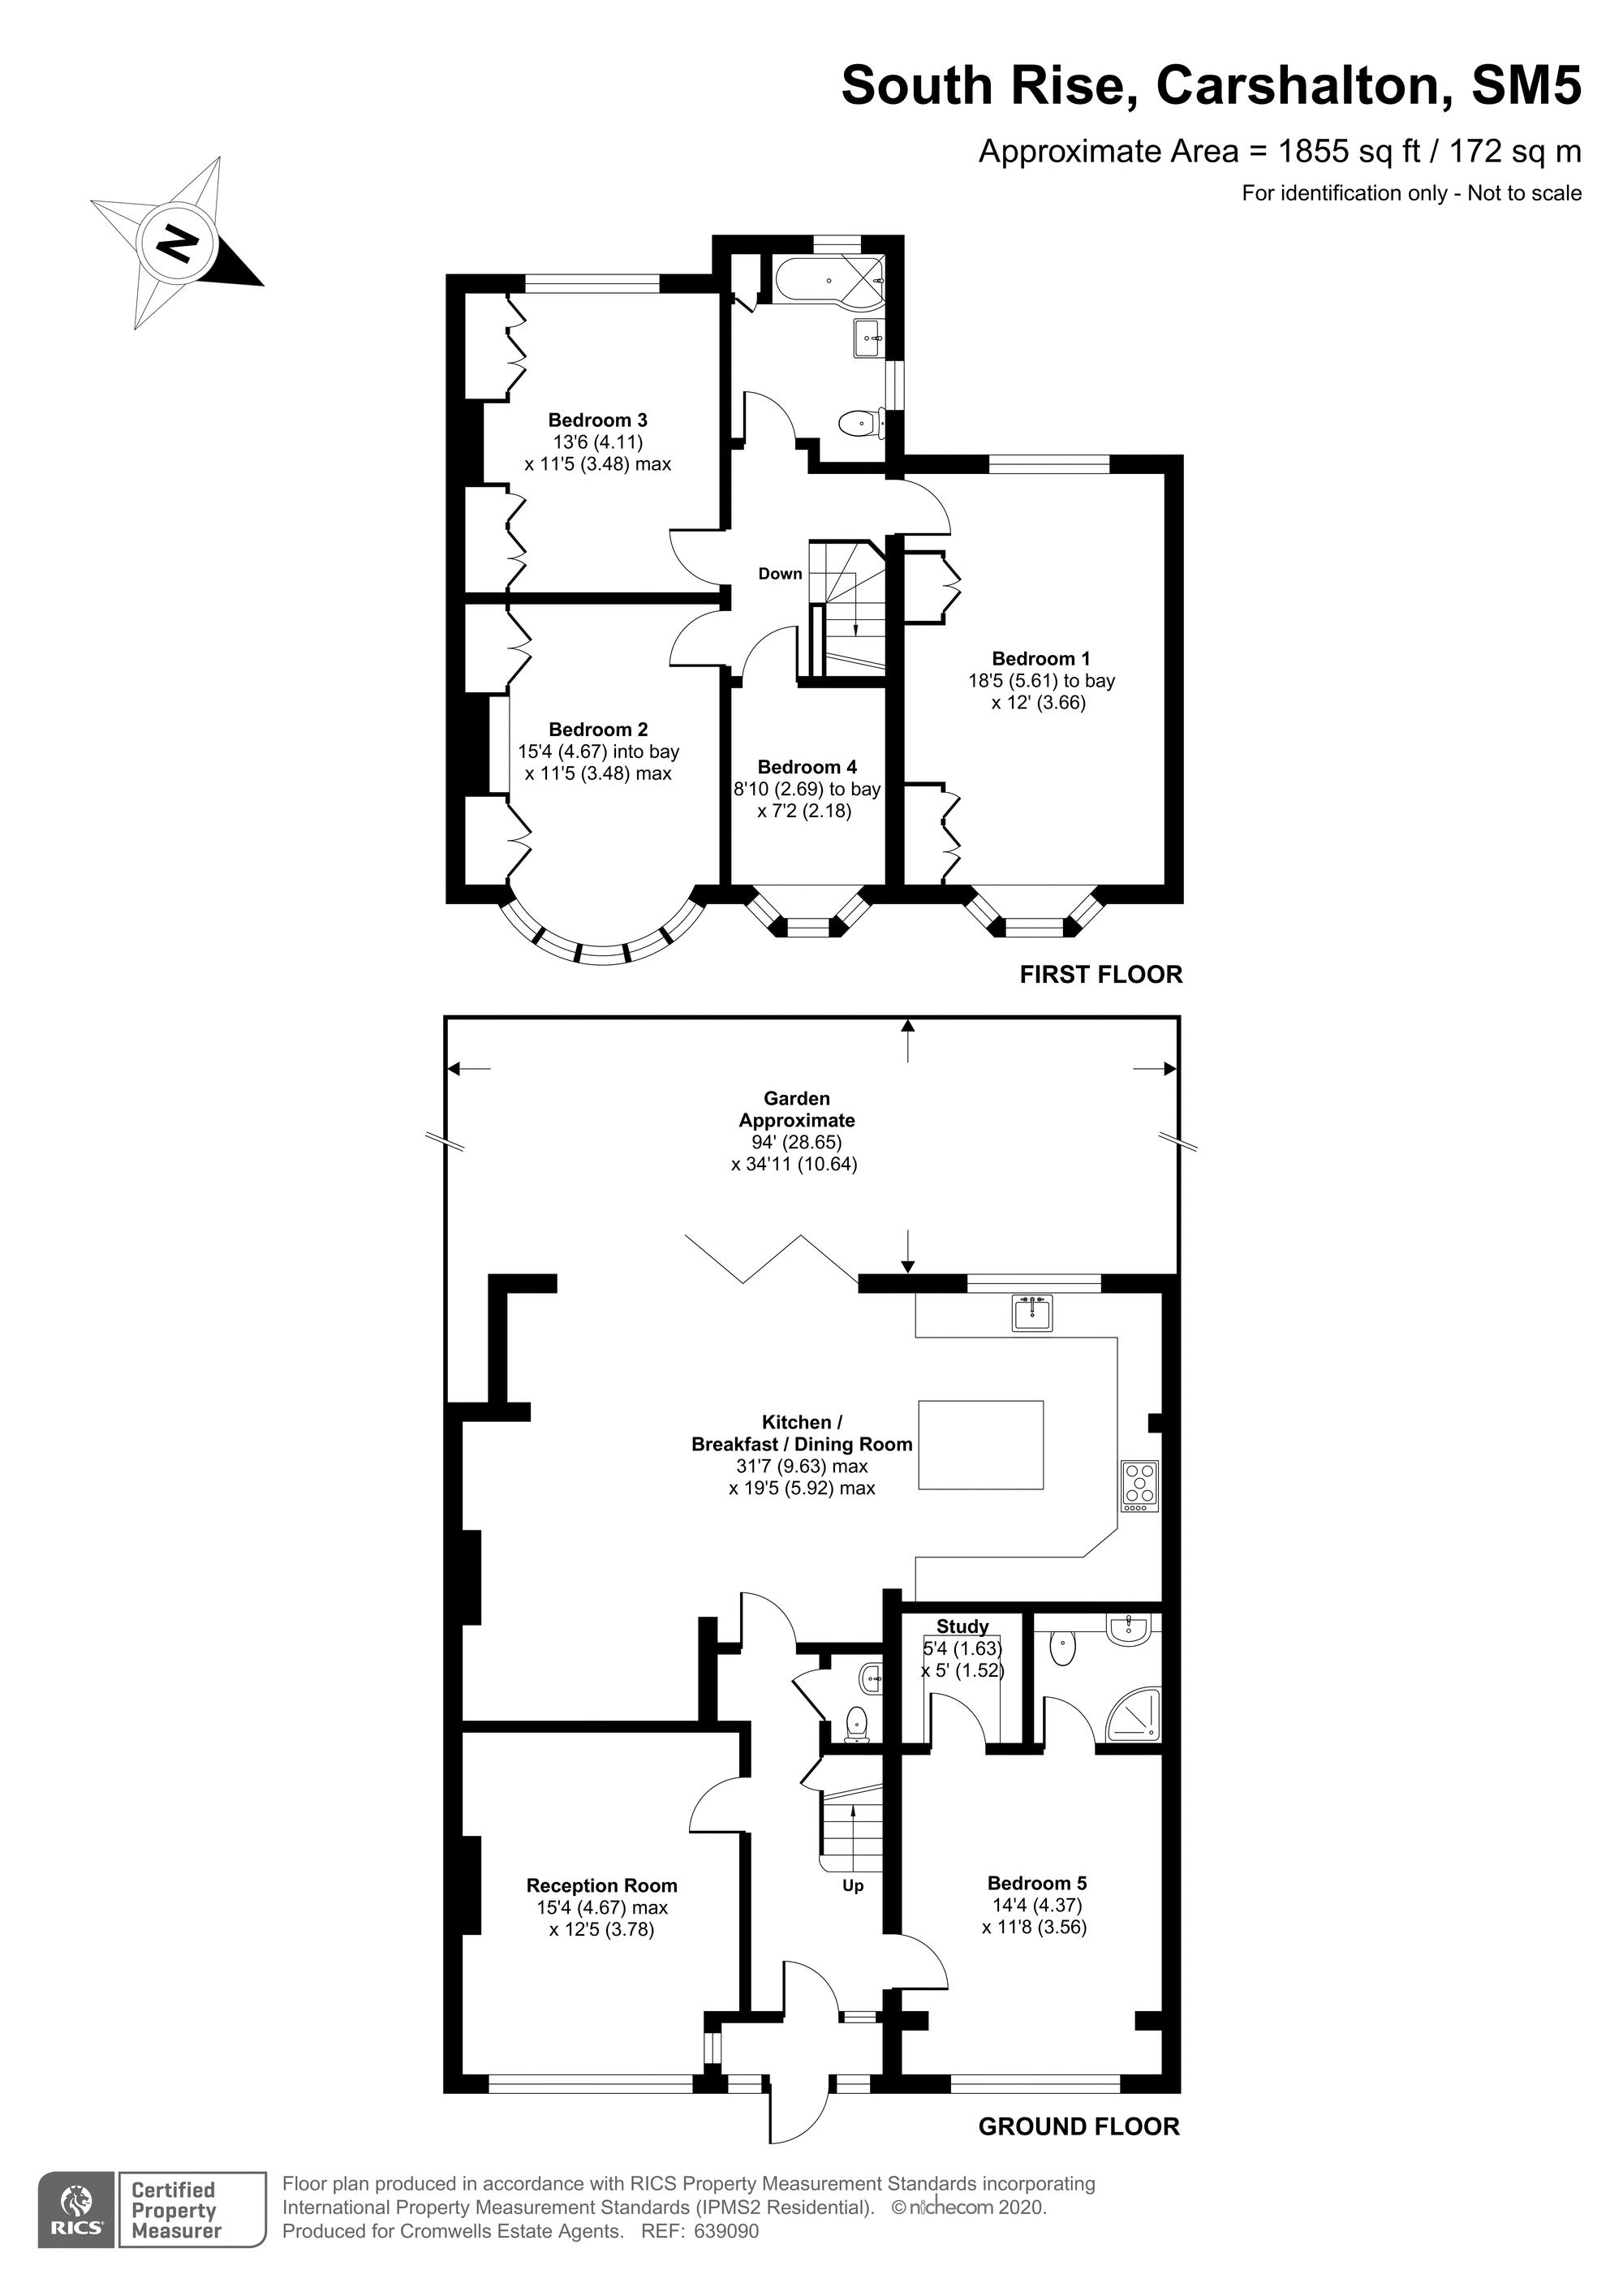 5 bedroom semi detached house For Sale in Carshalton Beeches - floorplan 1.